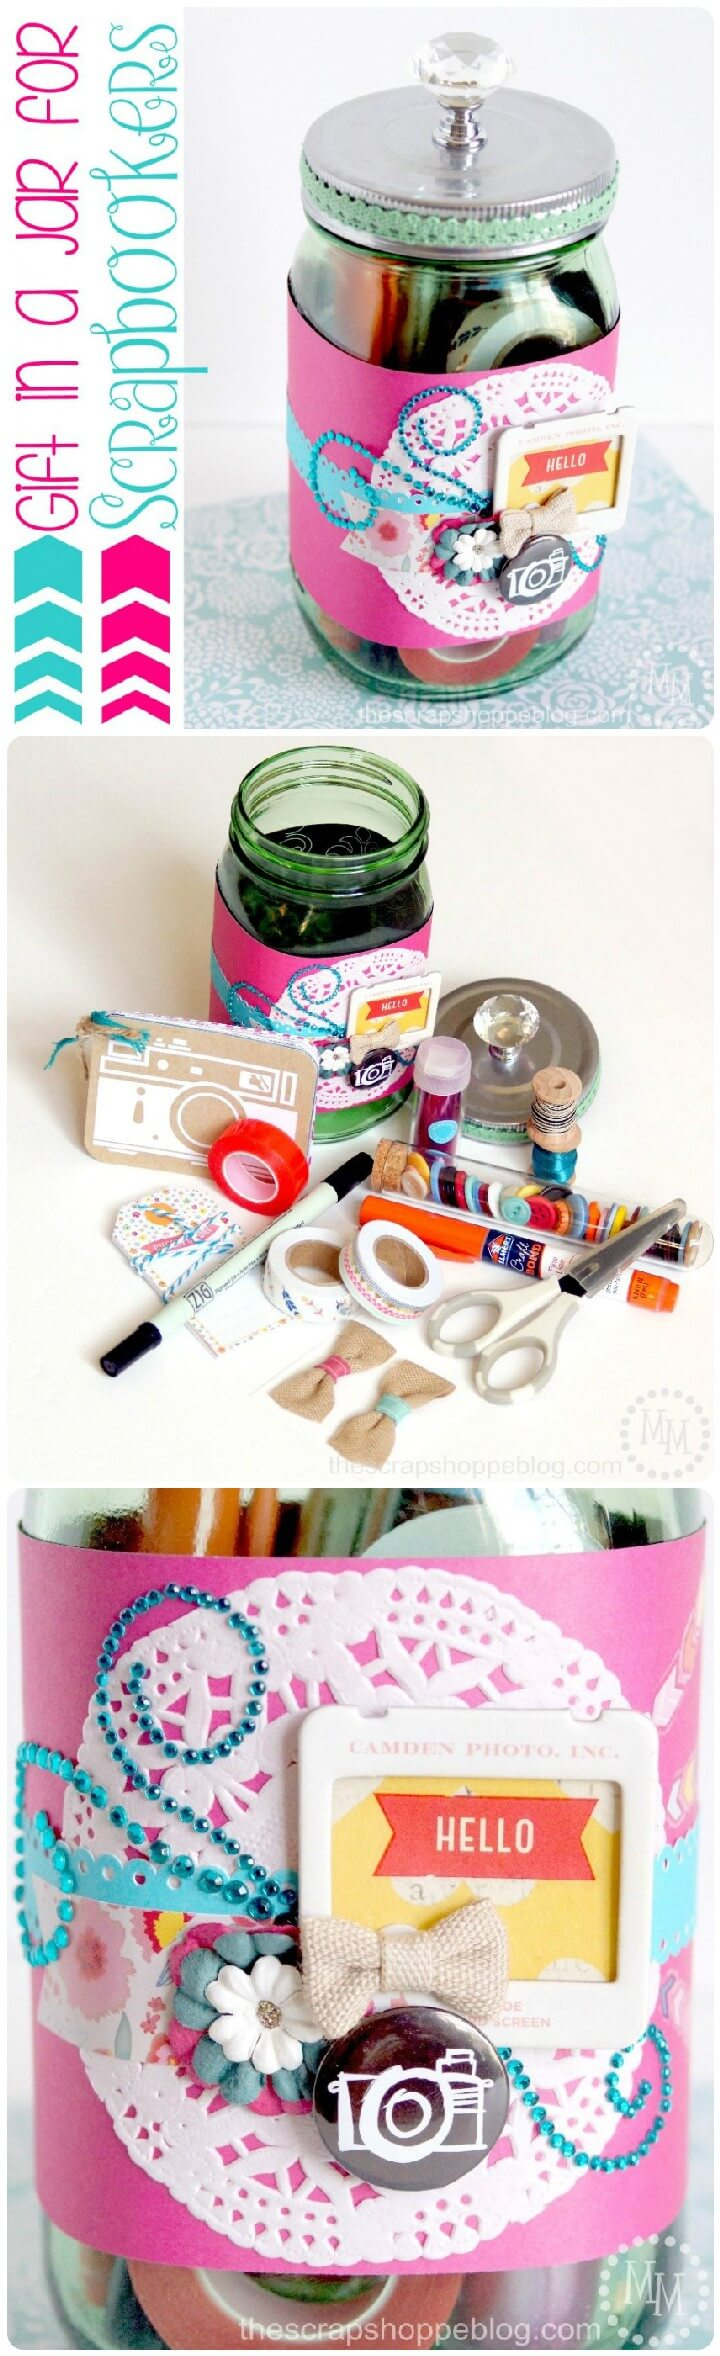 DIY Gift in a Mason Jar for Scrapbookers